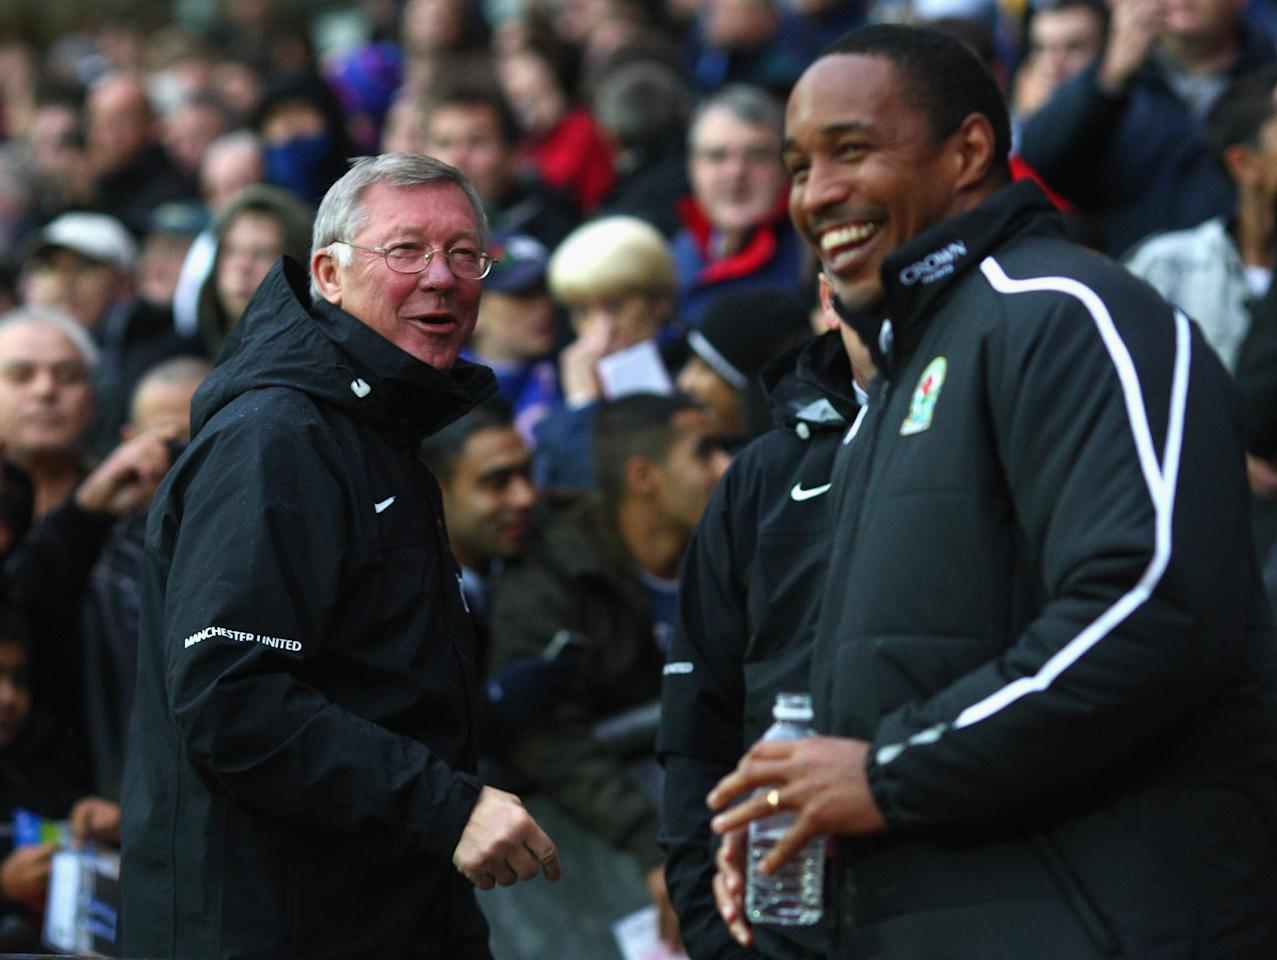 BLACKBURN, UNITED KINGDOM - OCTOBER 04:  Manchester United Manager Sir Alex Ferguson shares a joke with Blackburn Rovers Manager Paul Ince (R) prior to the start of the Barclays Premier League match between Blackburn Rovers and Manchester United at Ewood Park on October 4, 2008 in Blackburn, England.  (Photo by Laurence Griffiths/Getty Images)